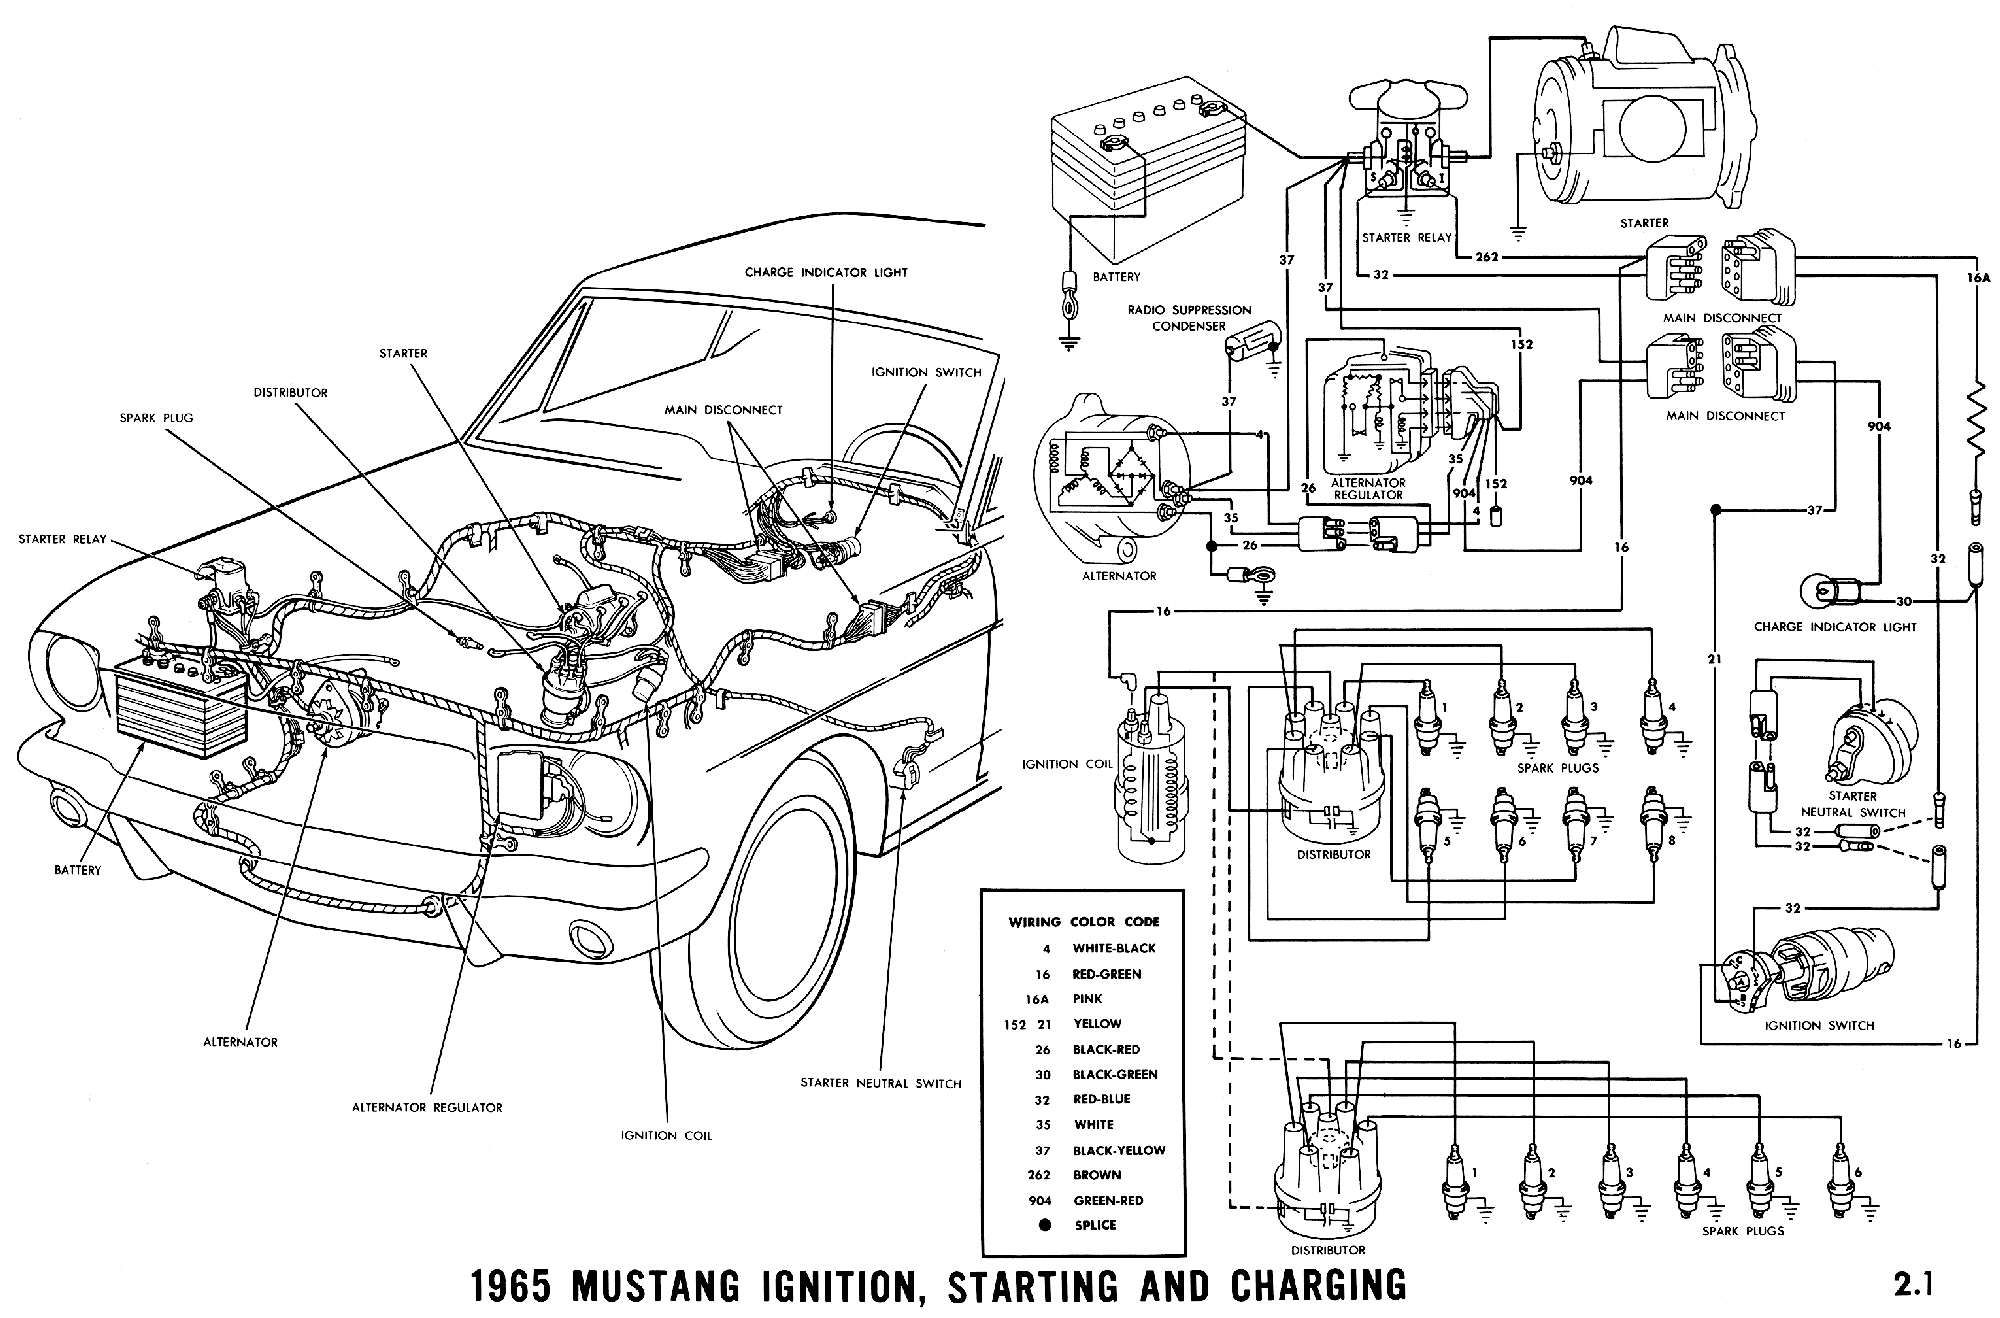 1965 mustang wiring diagrams - average joe restoration | mustang engine, 1965  mustang, mustang 1966  pinterest